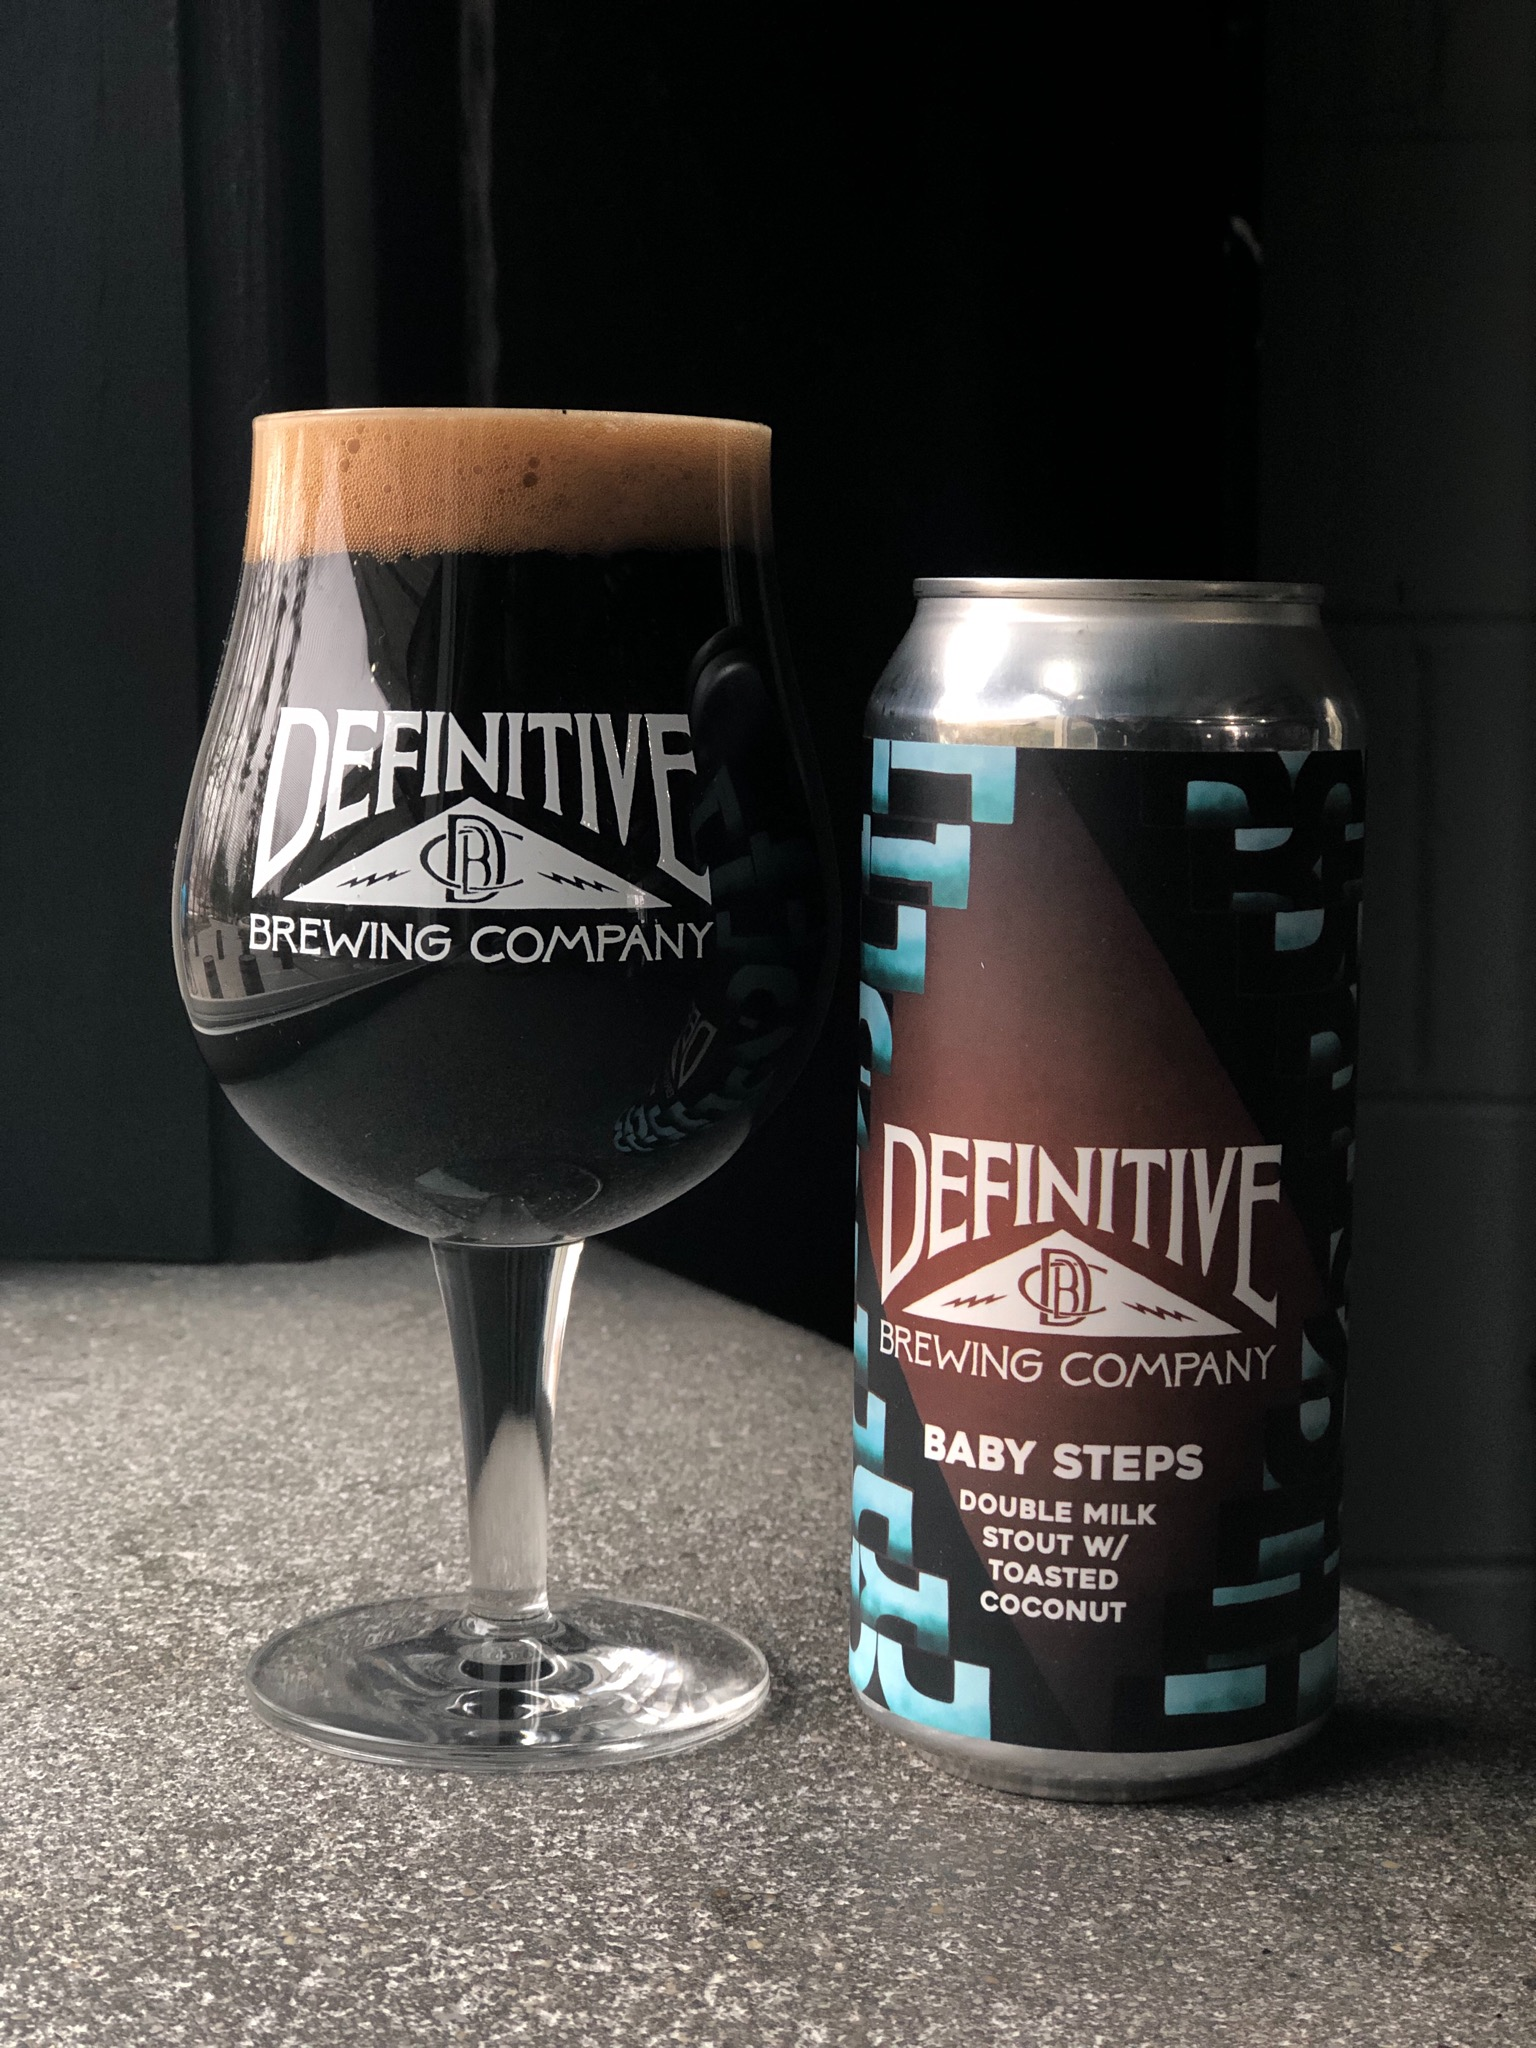 Baby Steps - Double Milk Stout w/ Toasted Coconut